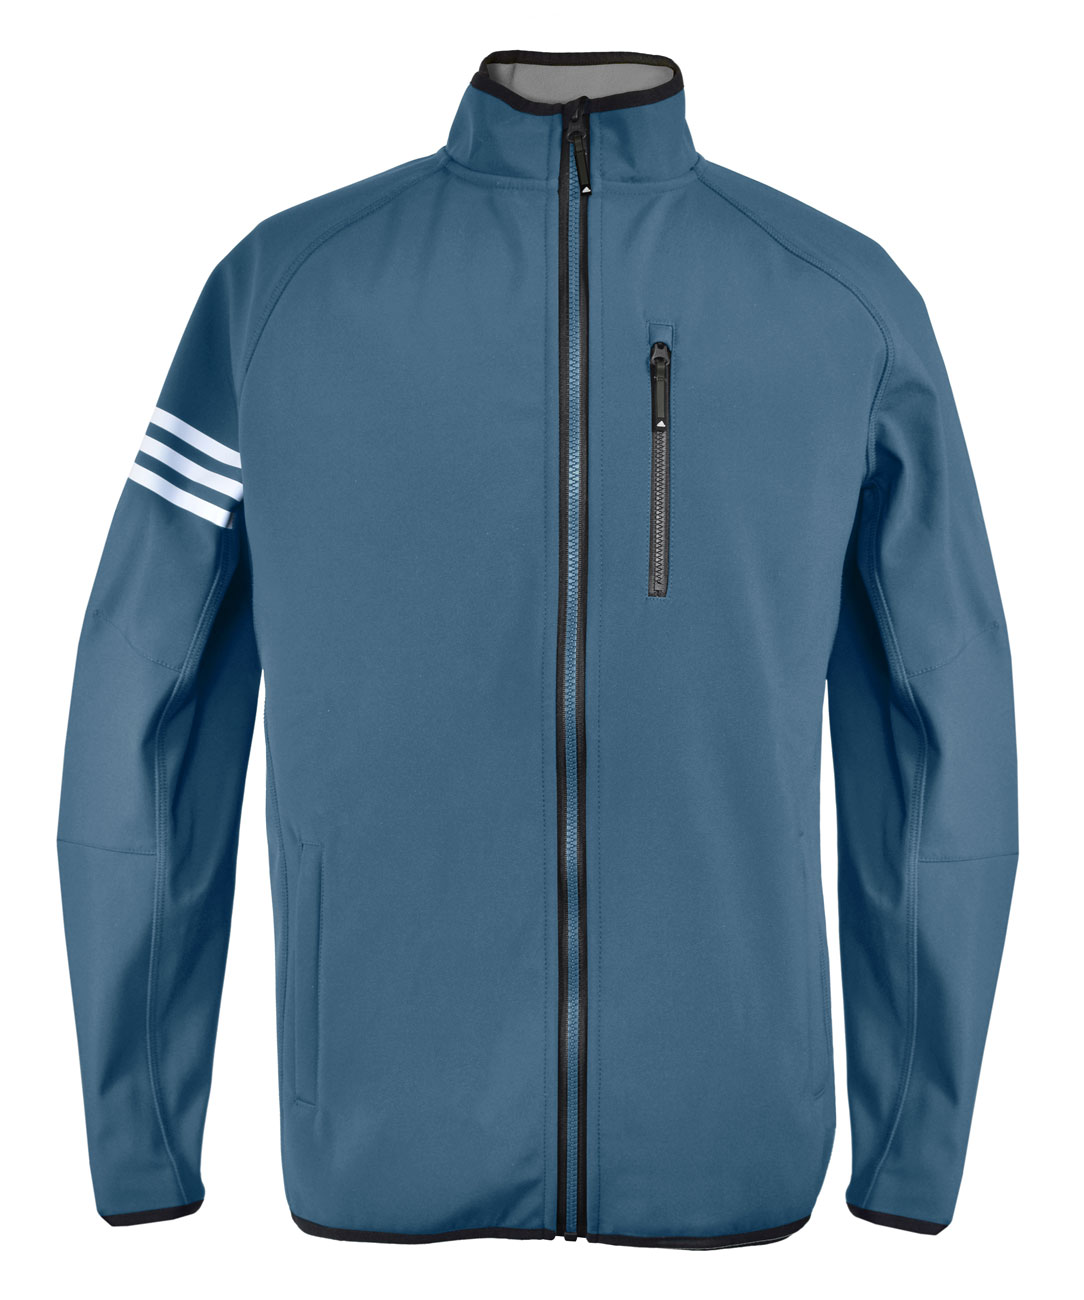 Adidas Herren Softshelljacke North Channel Funktionsjacke